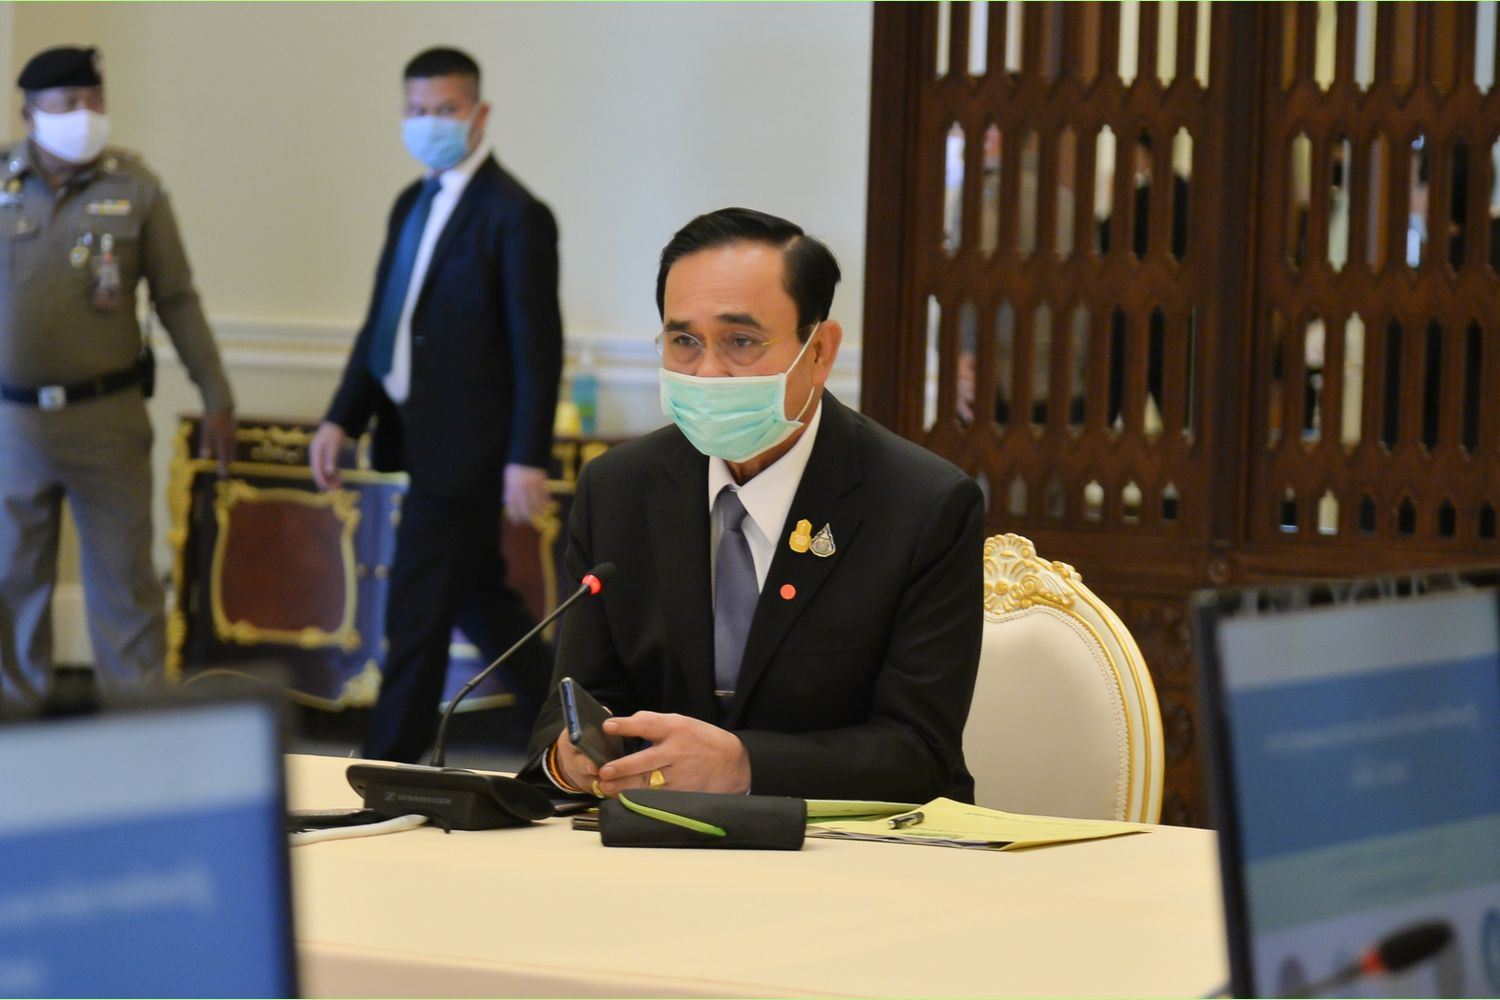 Prime Minister Prayut Chan-o-cha says the 5,000-baht handout period is in fact three months, not just one month like he said earlier. (Government House photo)